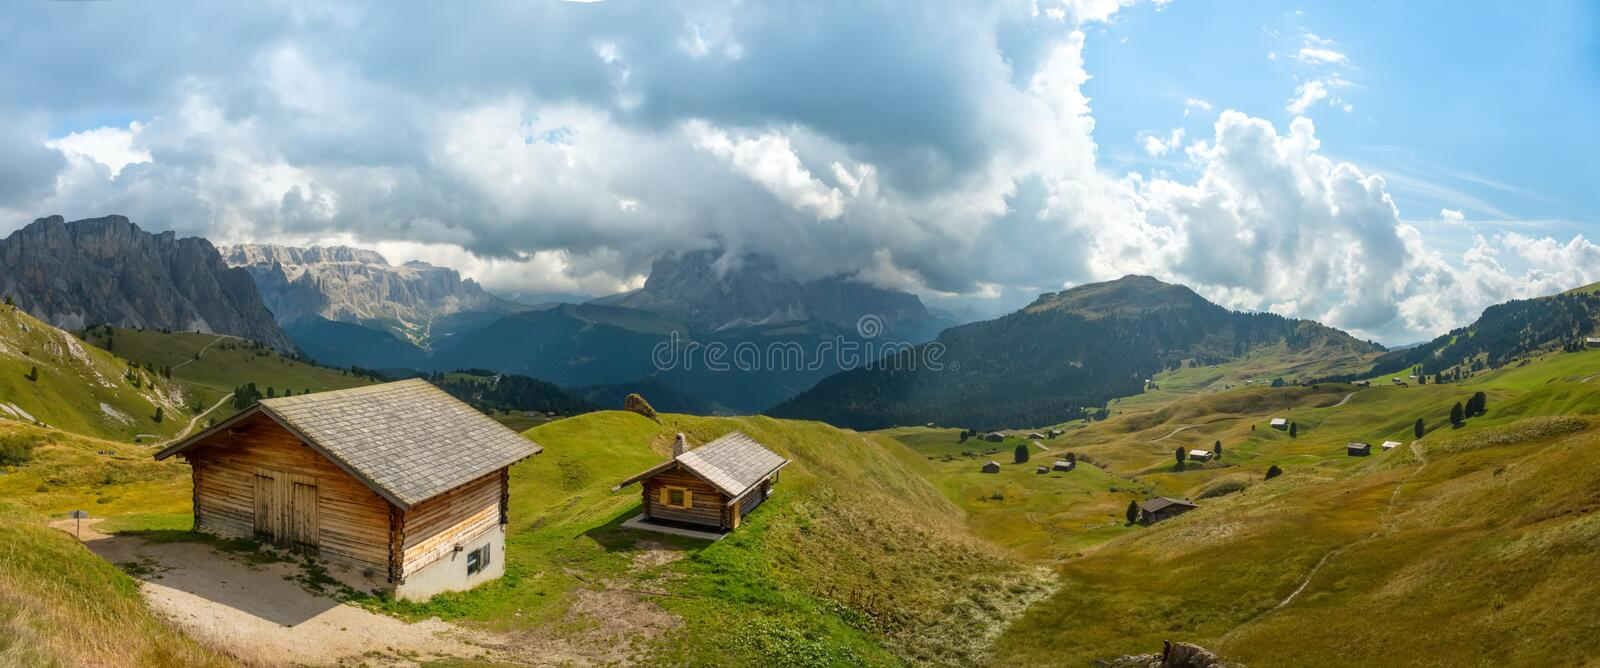 Odle Puez mountain and wooden chalets in Dolomites, Trentino Alto Adige, Italy stock photos